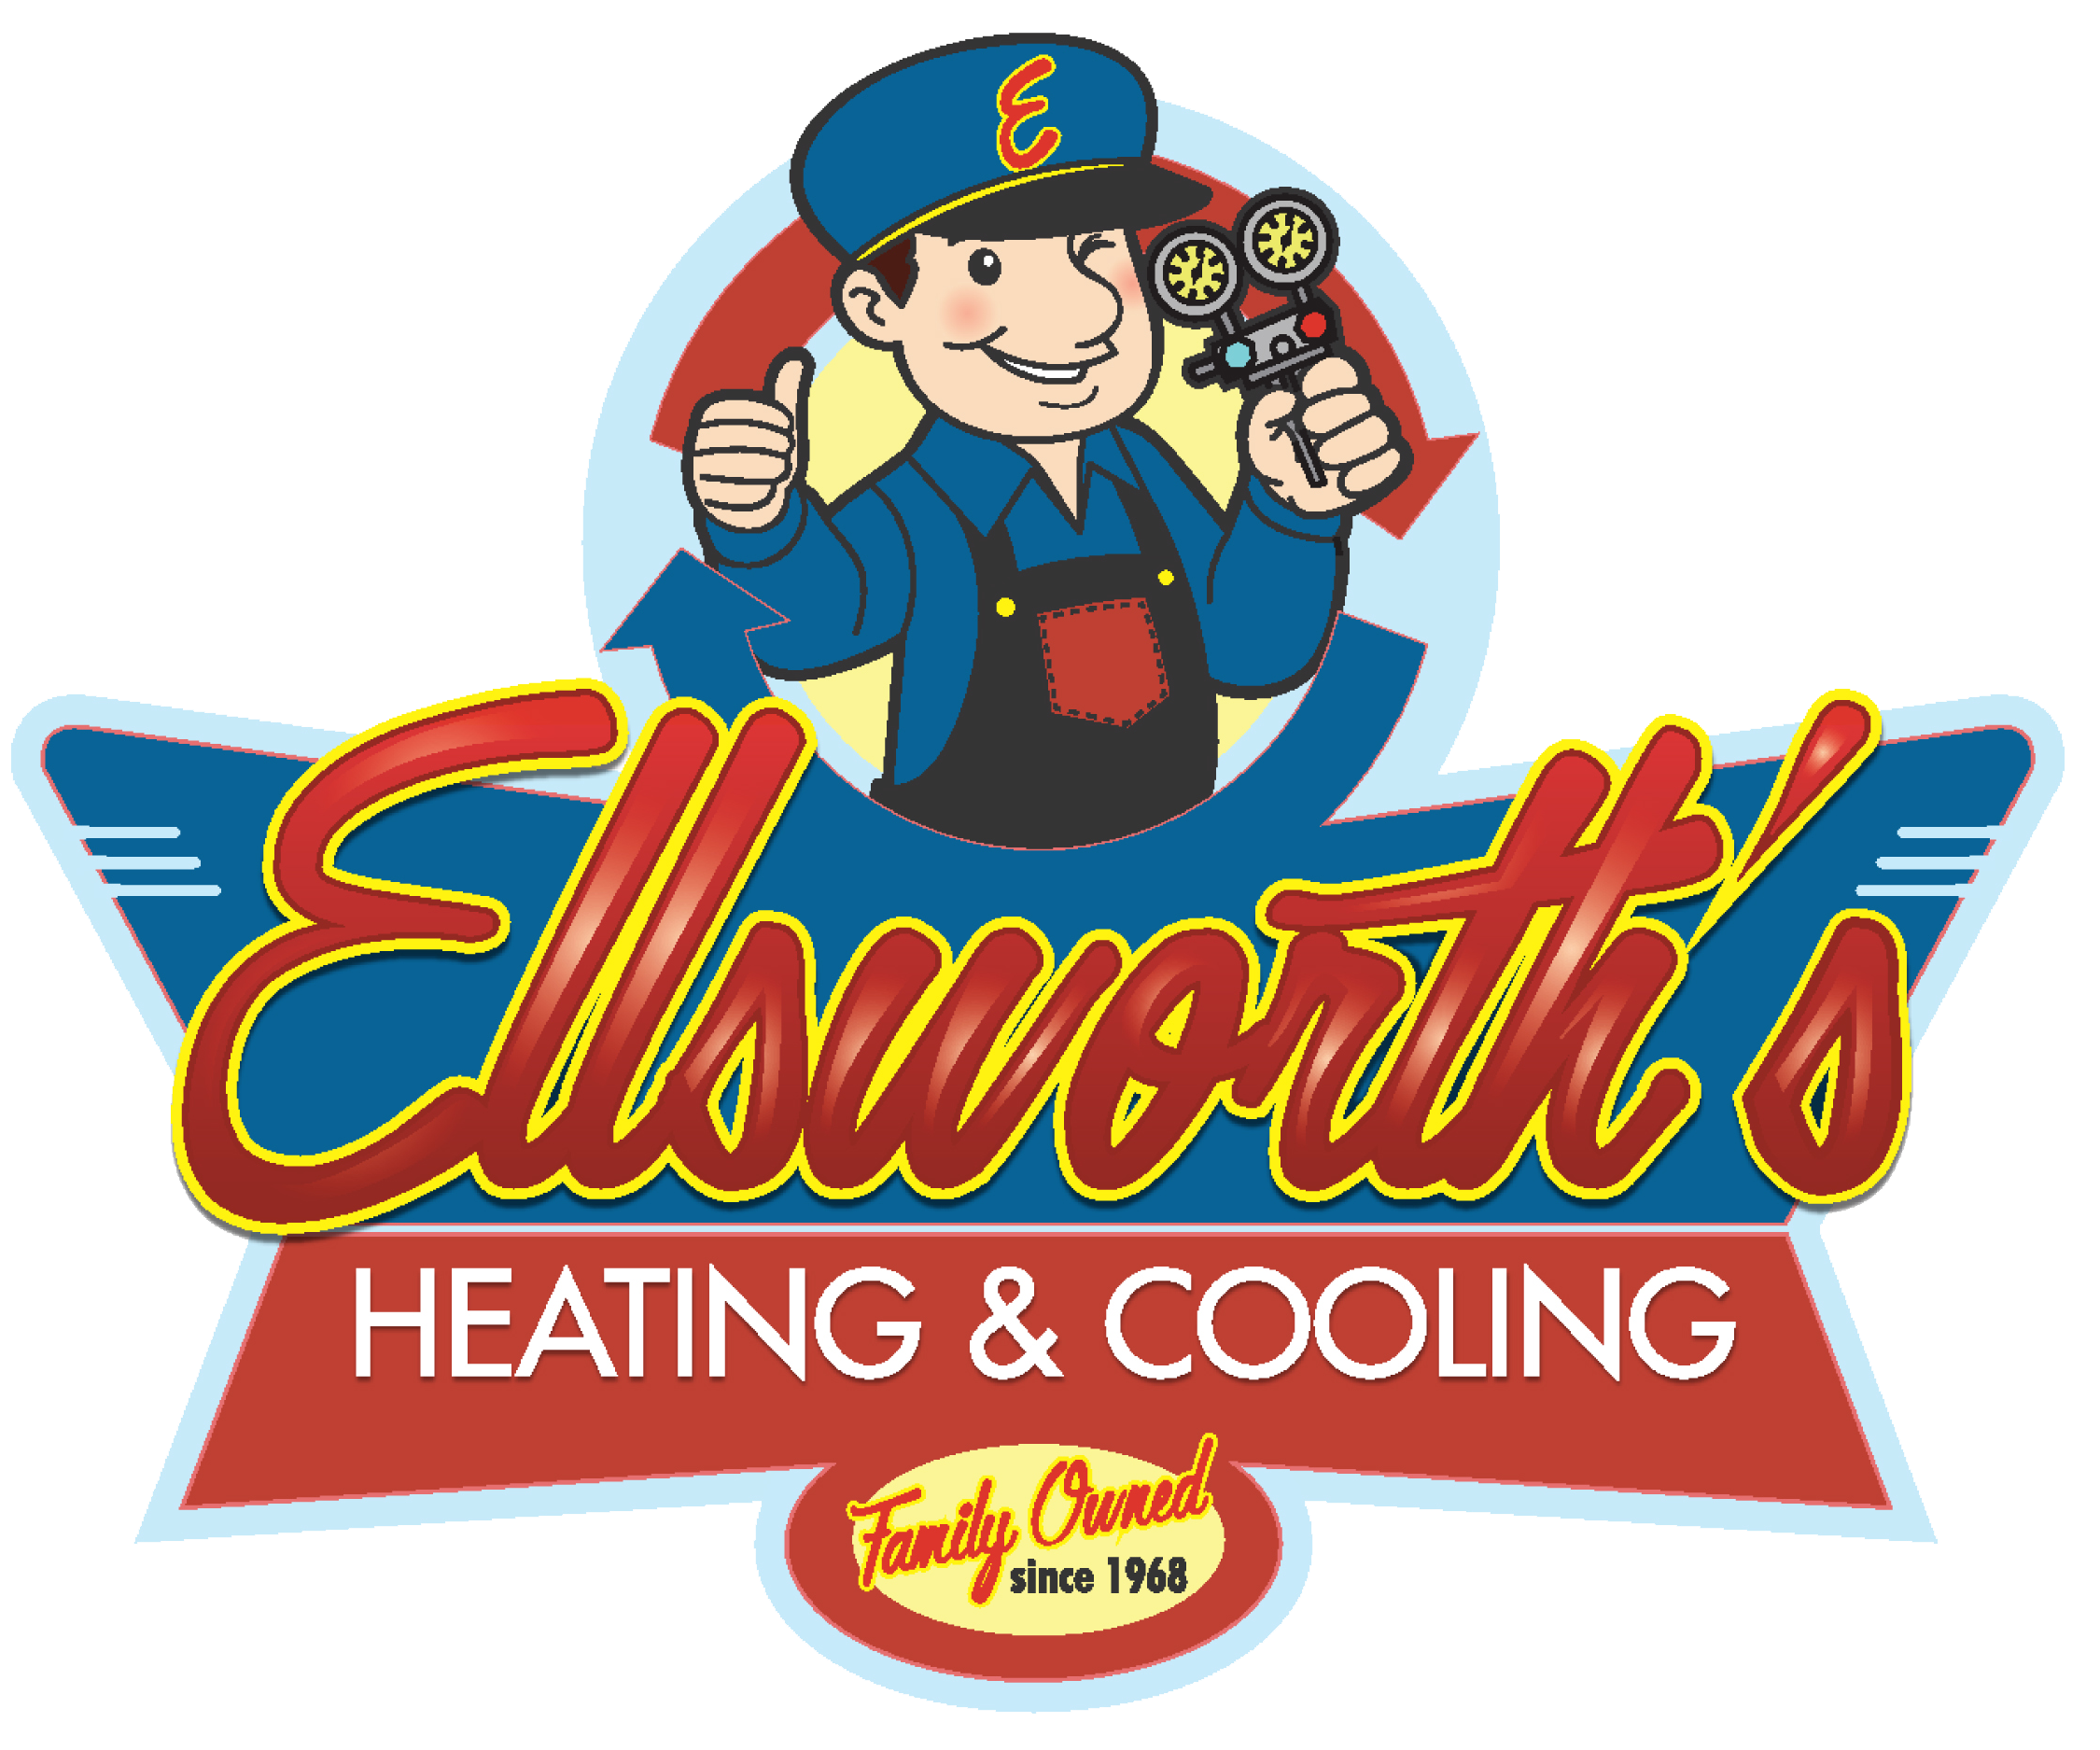 Ellsworth Heating & Cooling